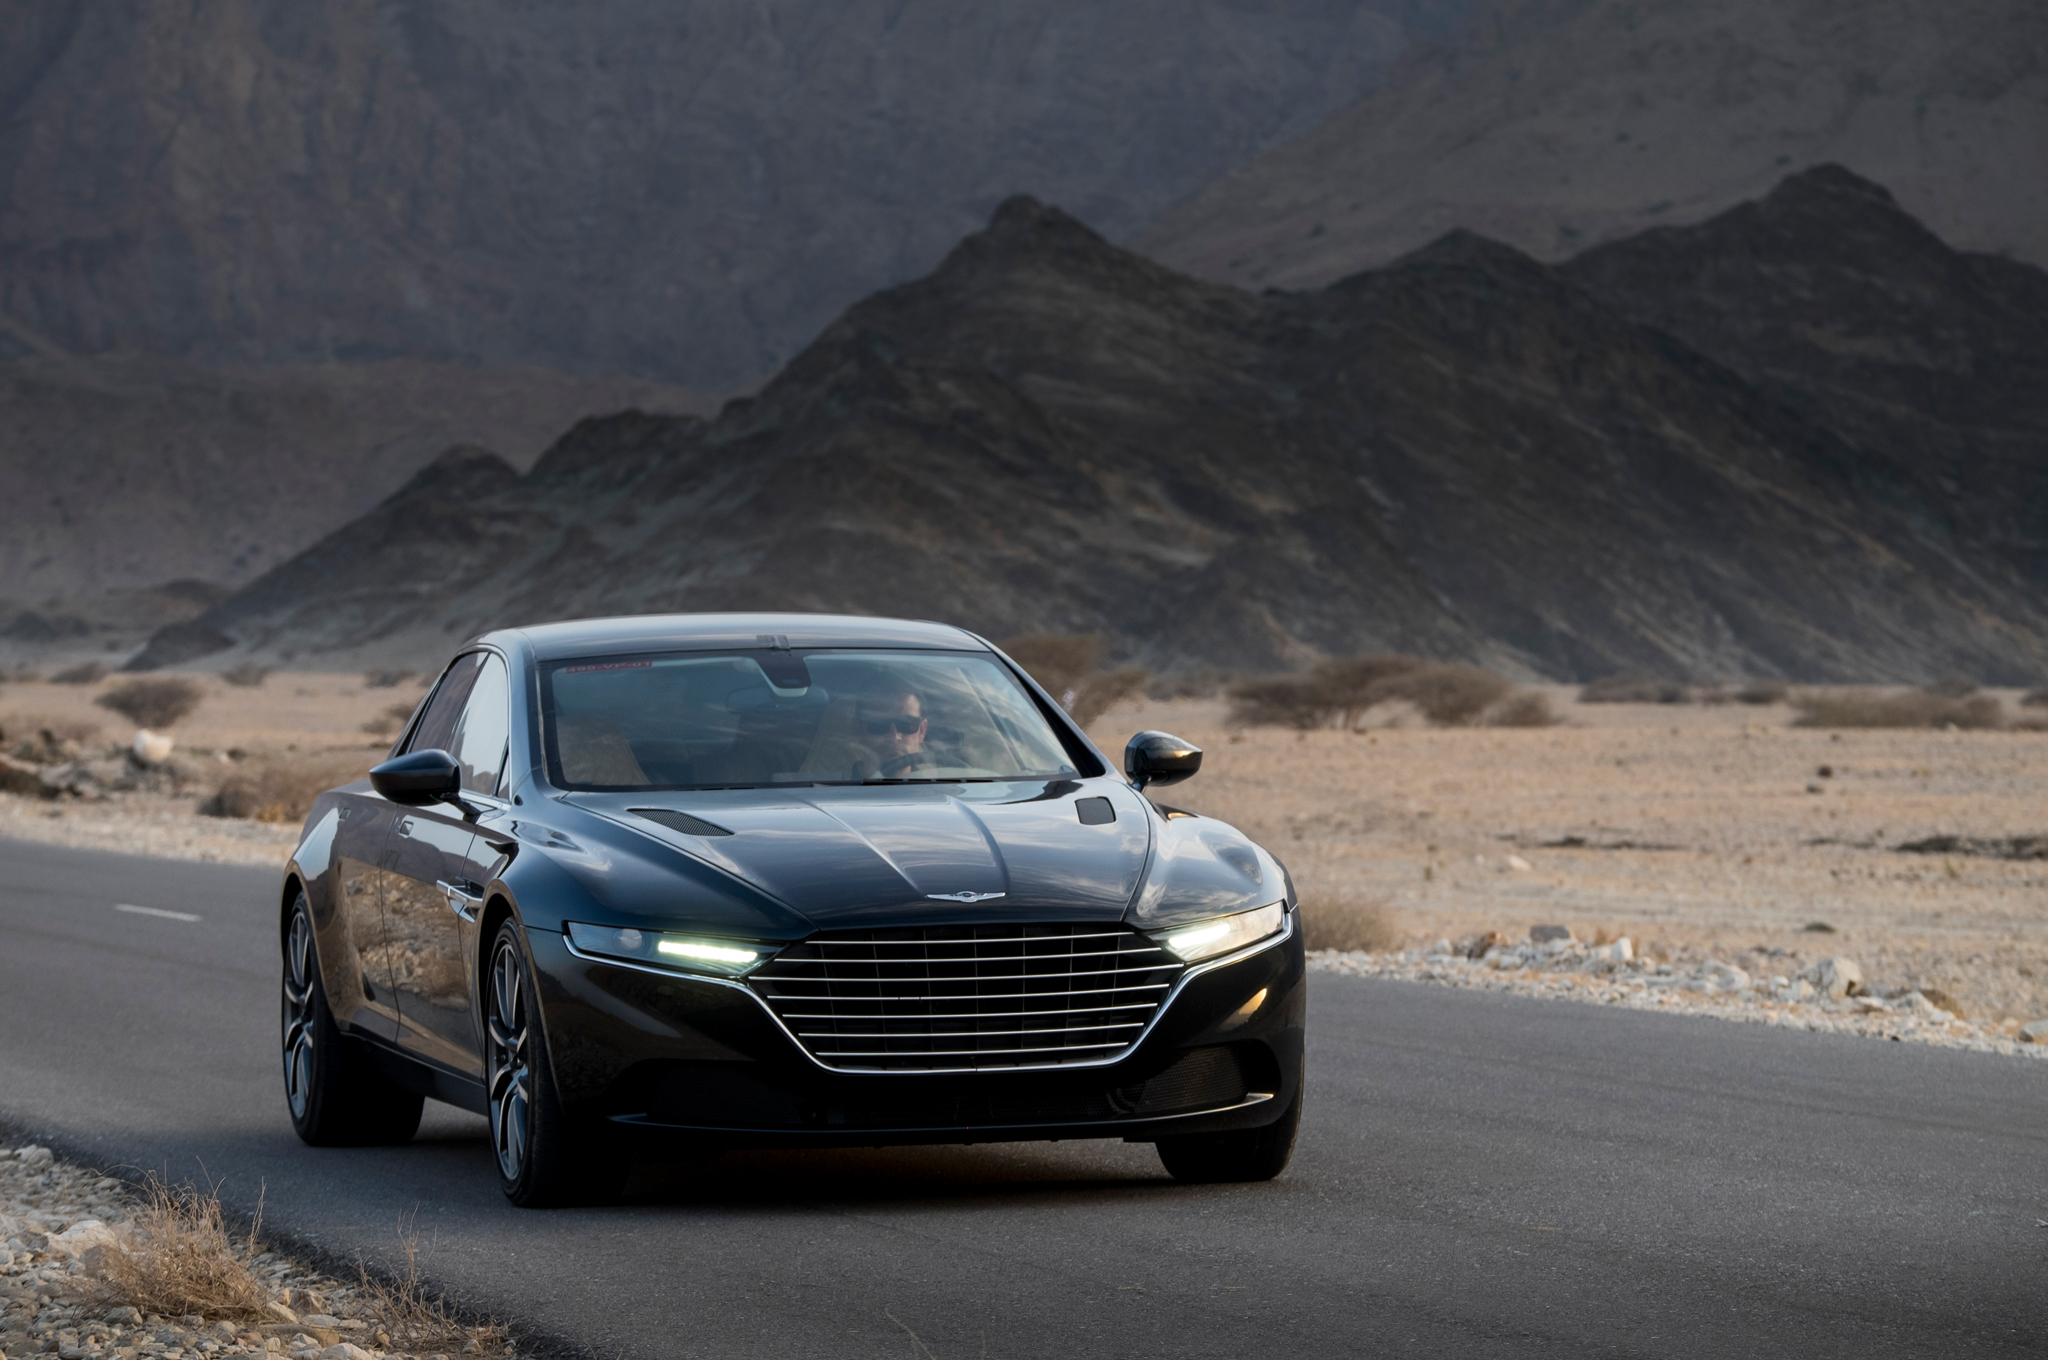 2018 Aston Martin Lagonda Concept photo - 4